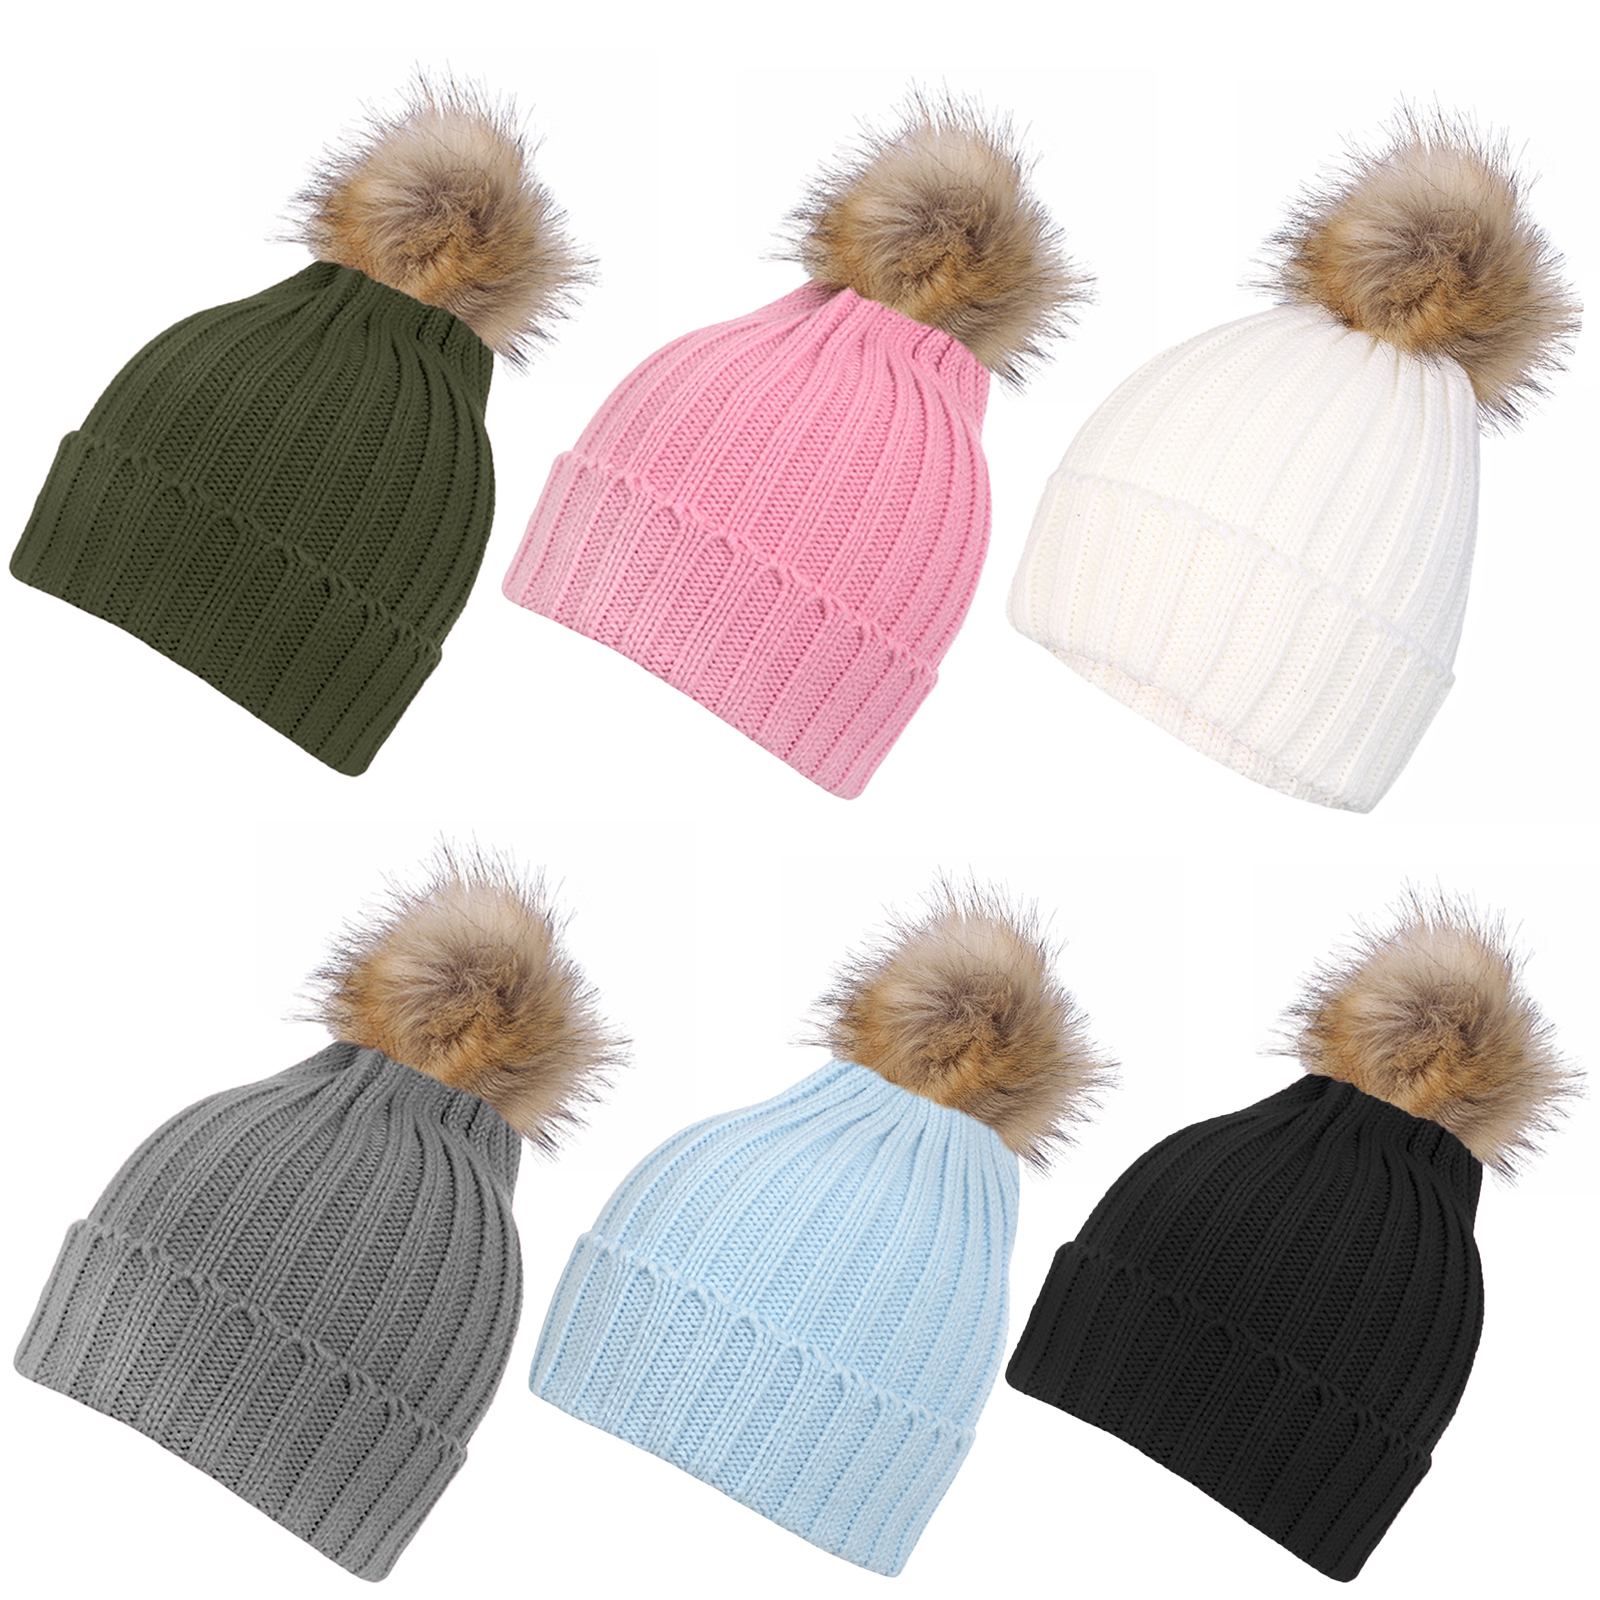 Details about Inspirations Womens Fluffy Faux Fur Pom Pom Beanie Hat  Knitted Bobble Hat 8680ef4926a